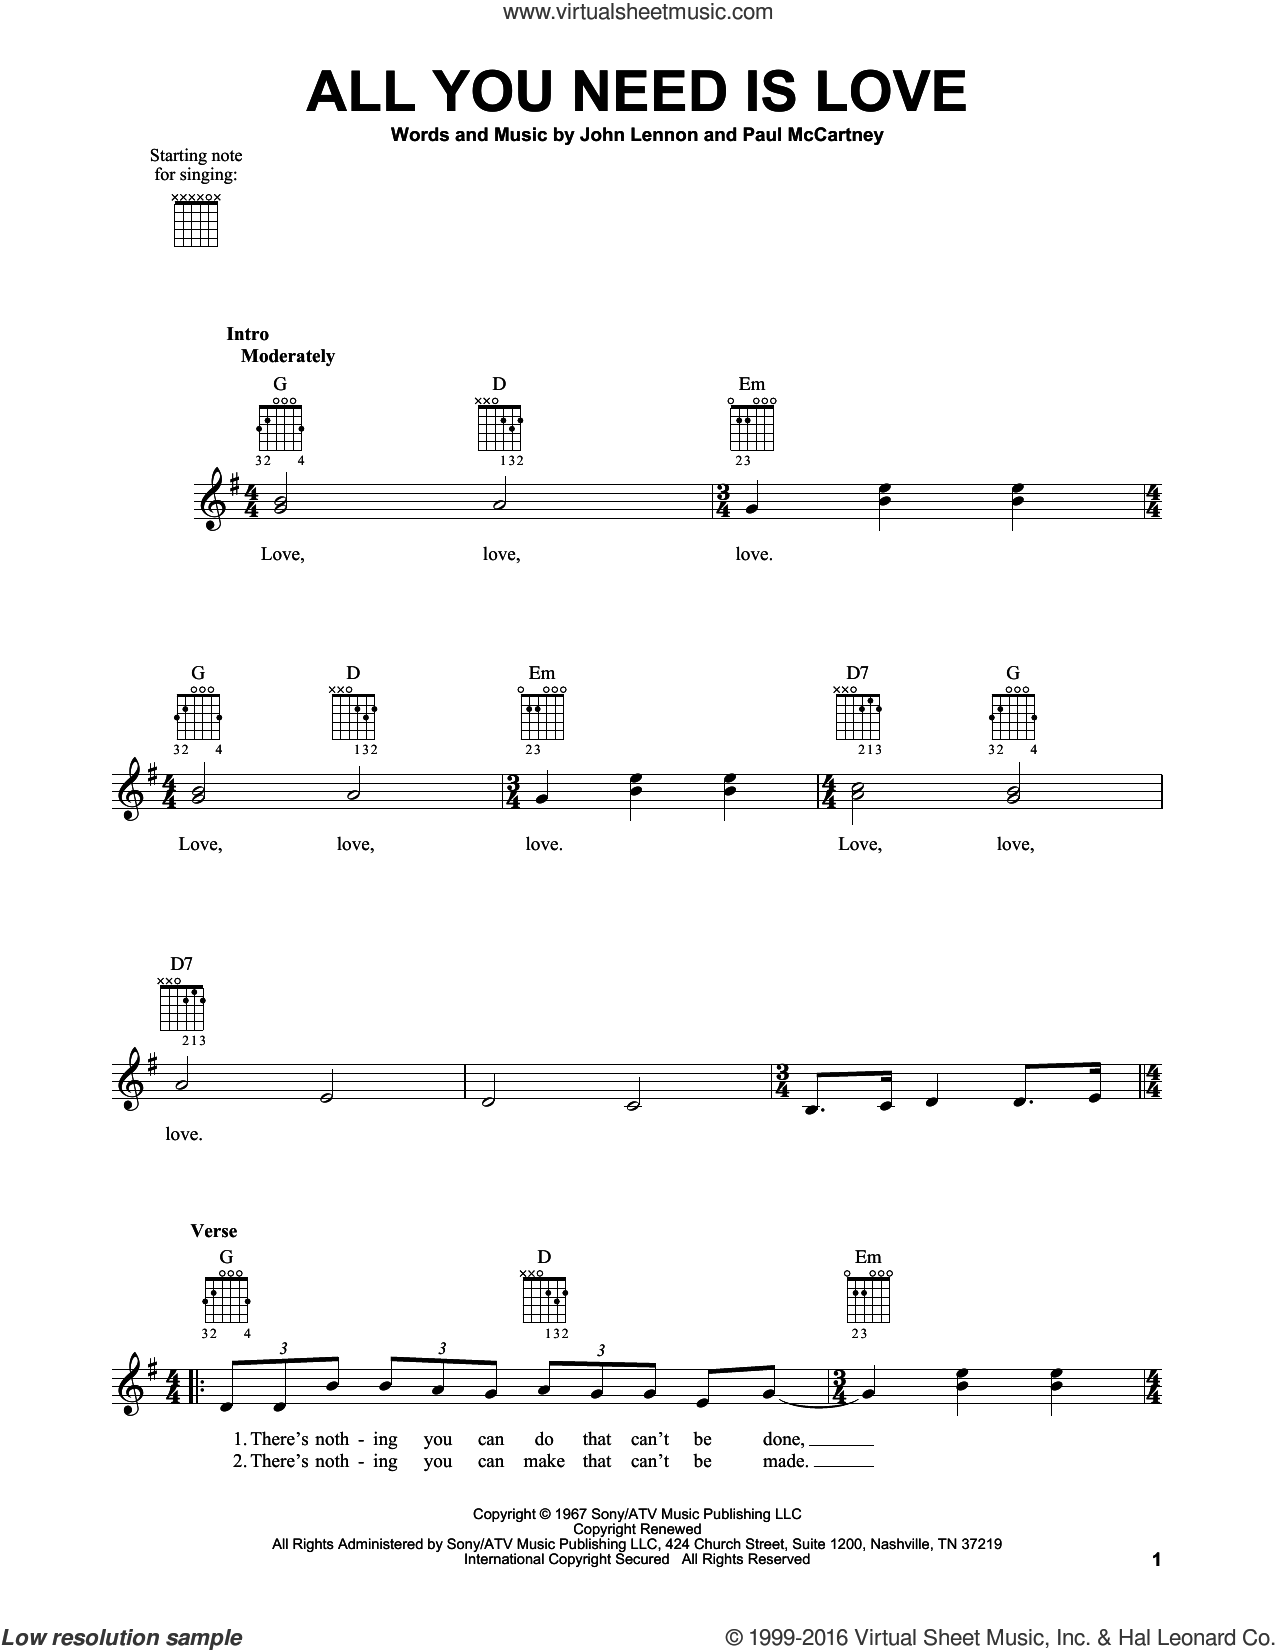 Beatles - All You Need Is Love sheet music (easy) for guitar